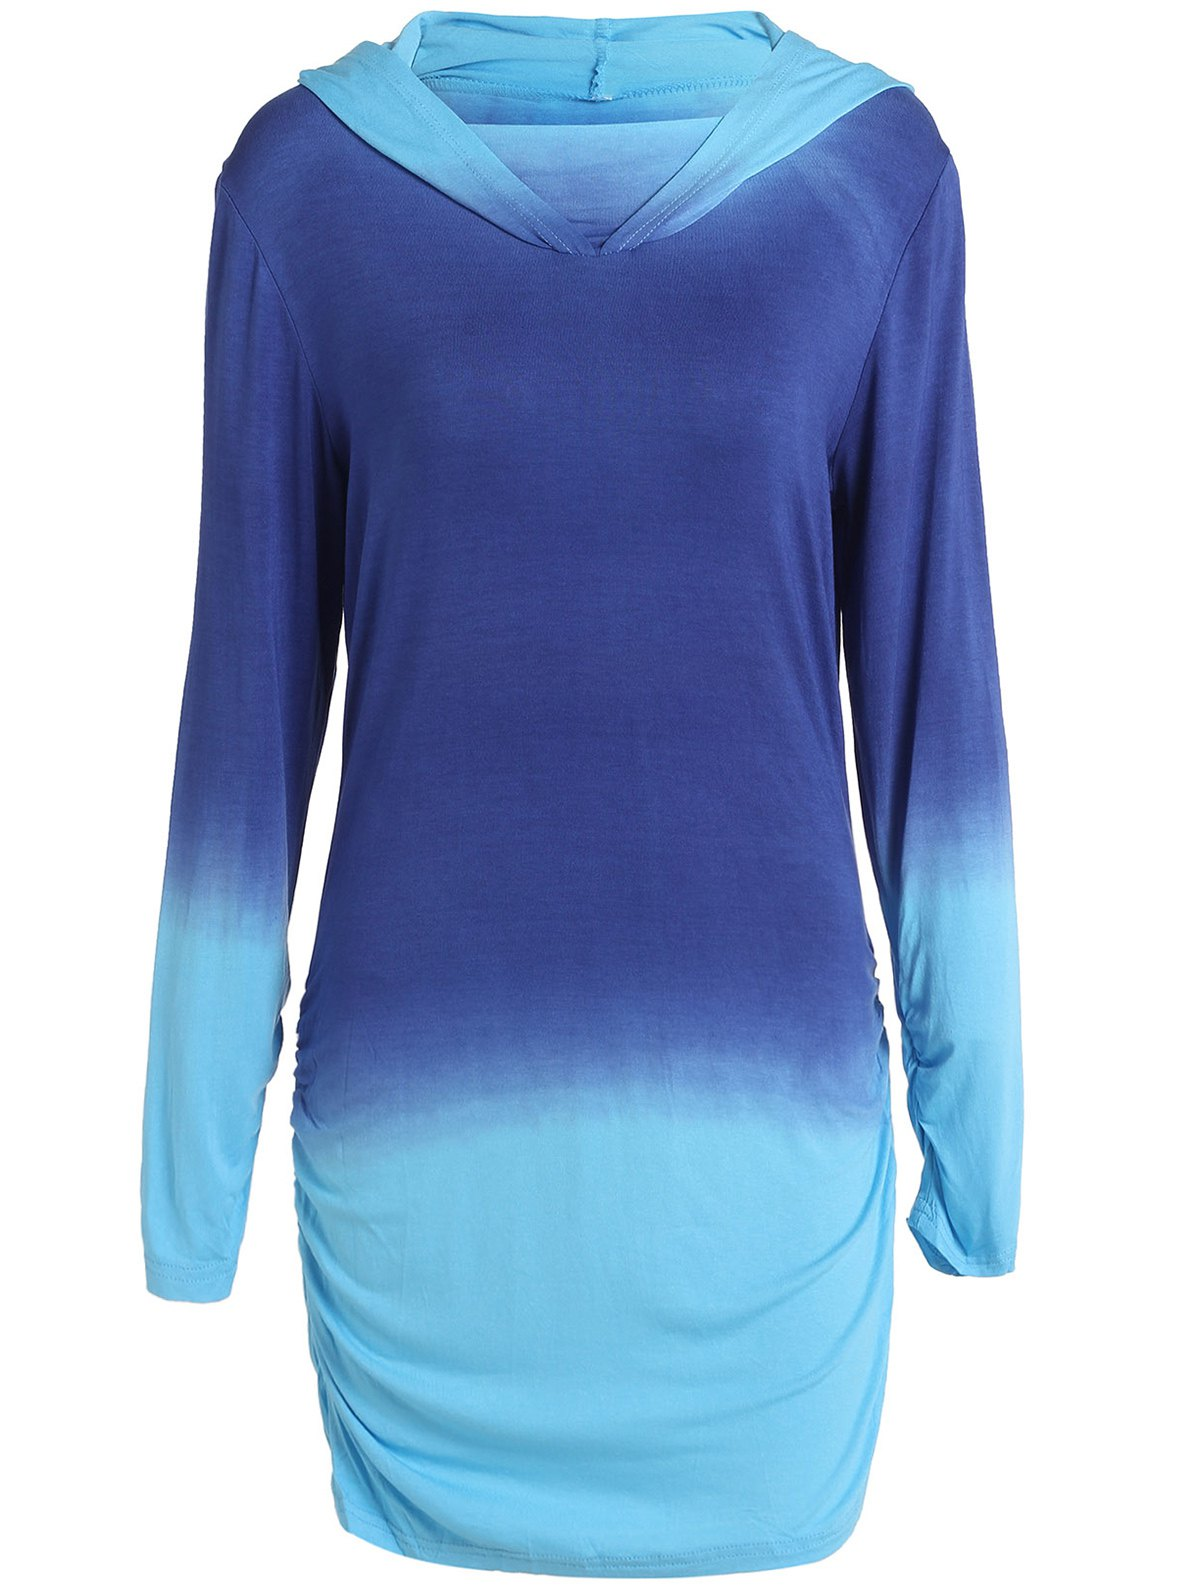 Charming Hooded Ombre Color Long Sleeve Hoodie For Women - BLUE S